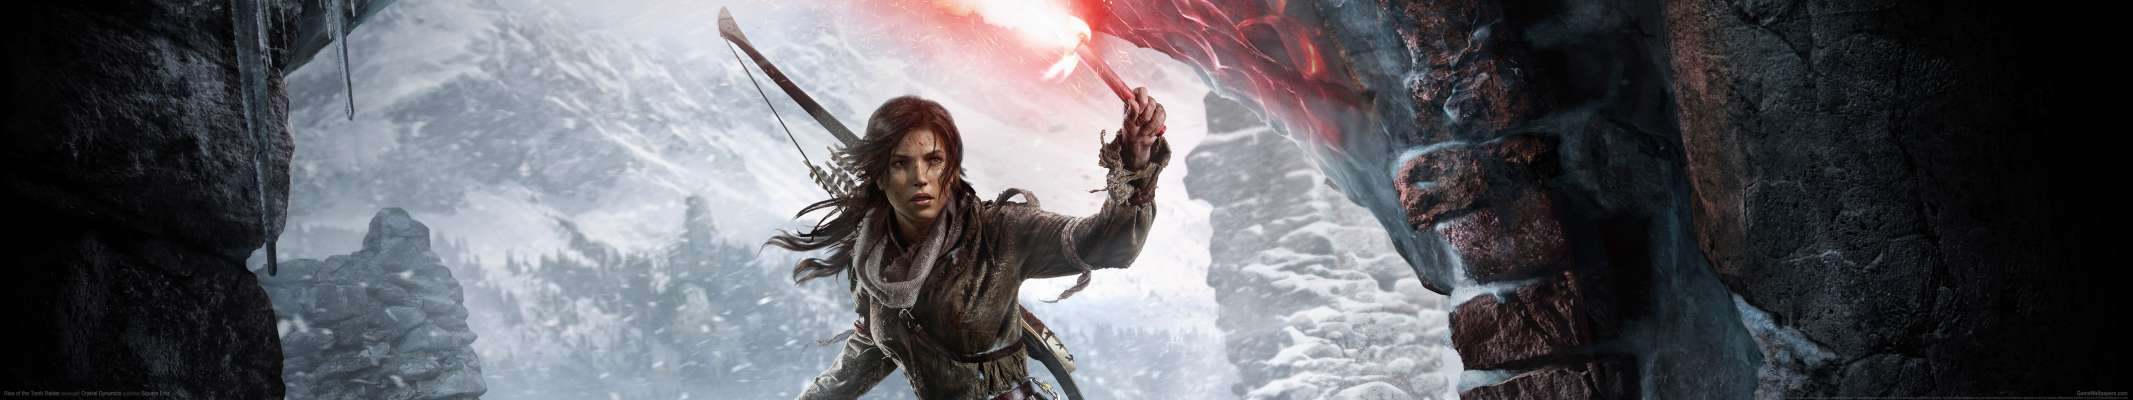 Rise of the Tomb Raider triple screen fondo de escritorio